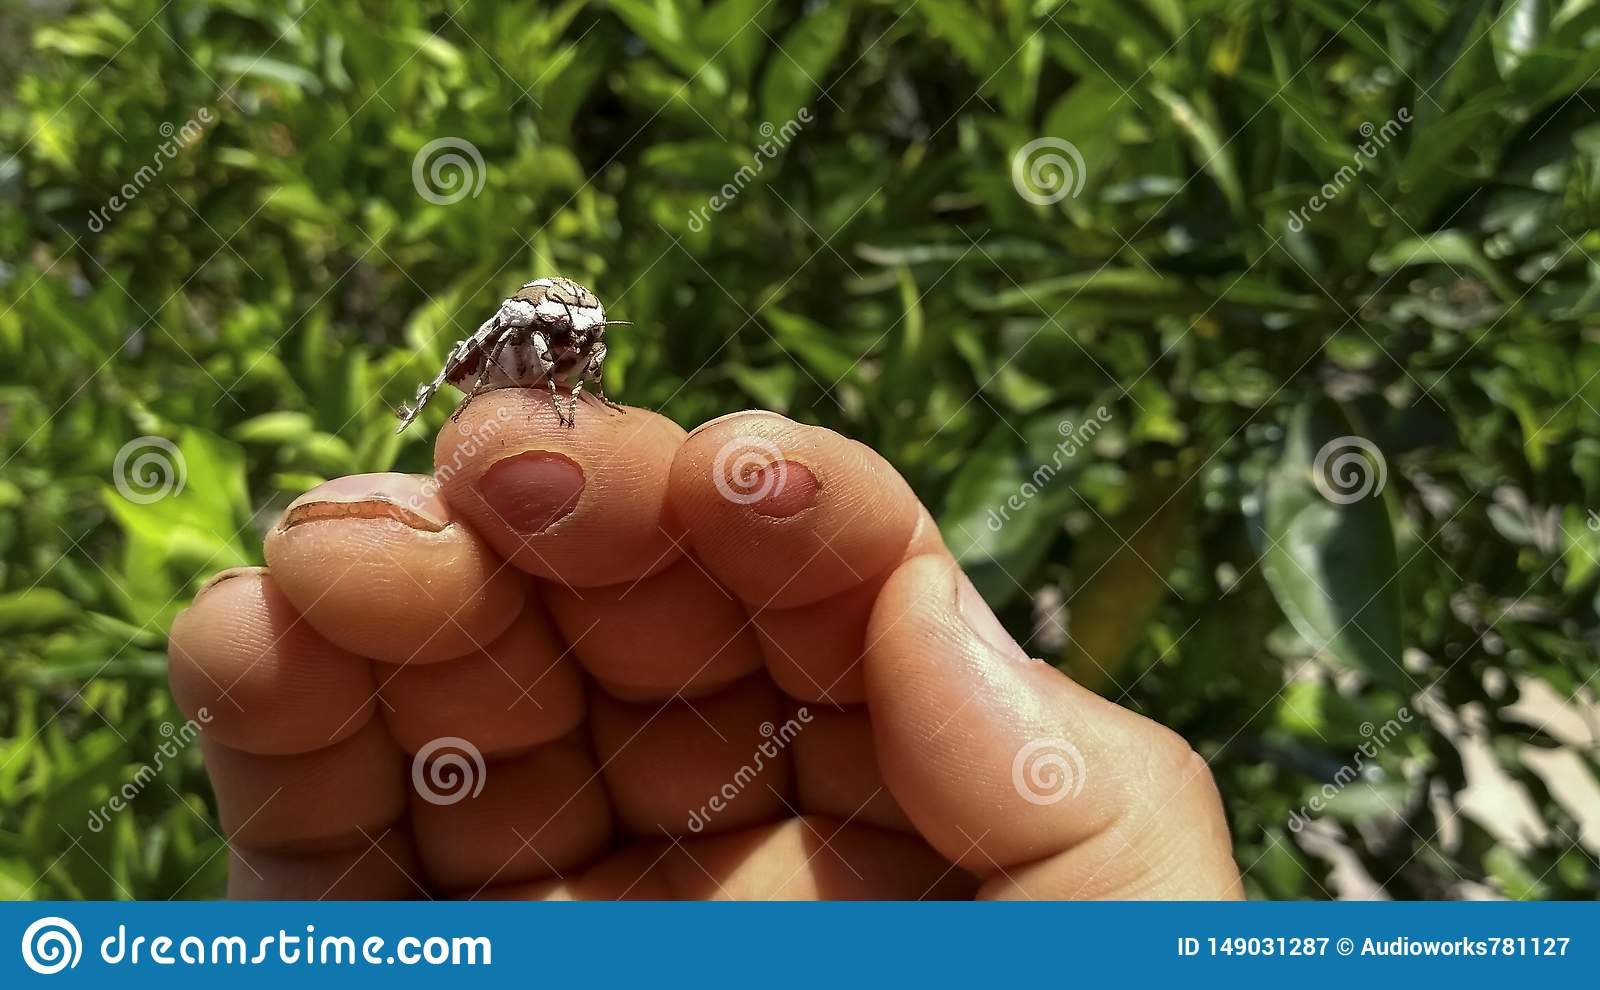 The relationship between human and insect beautiful